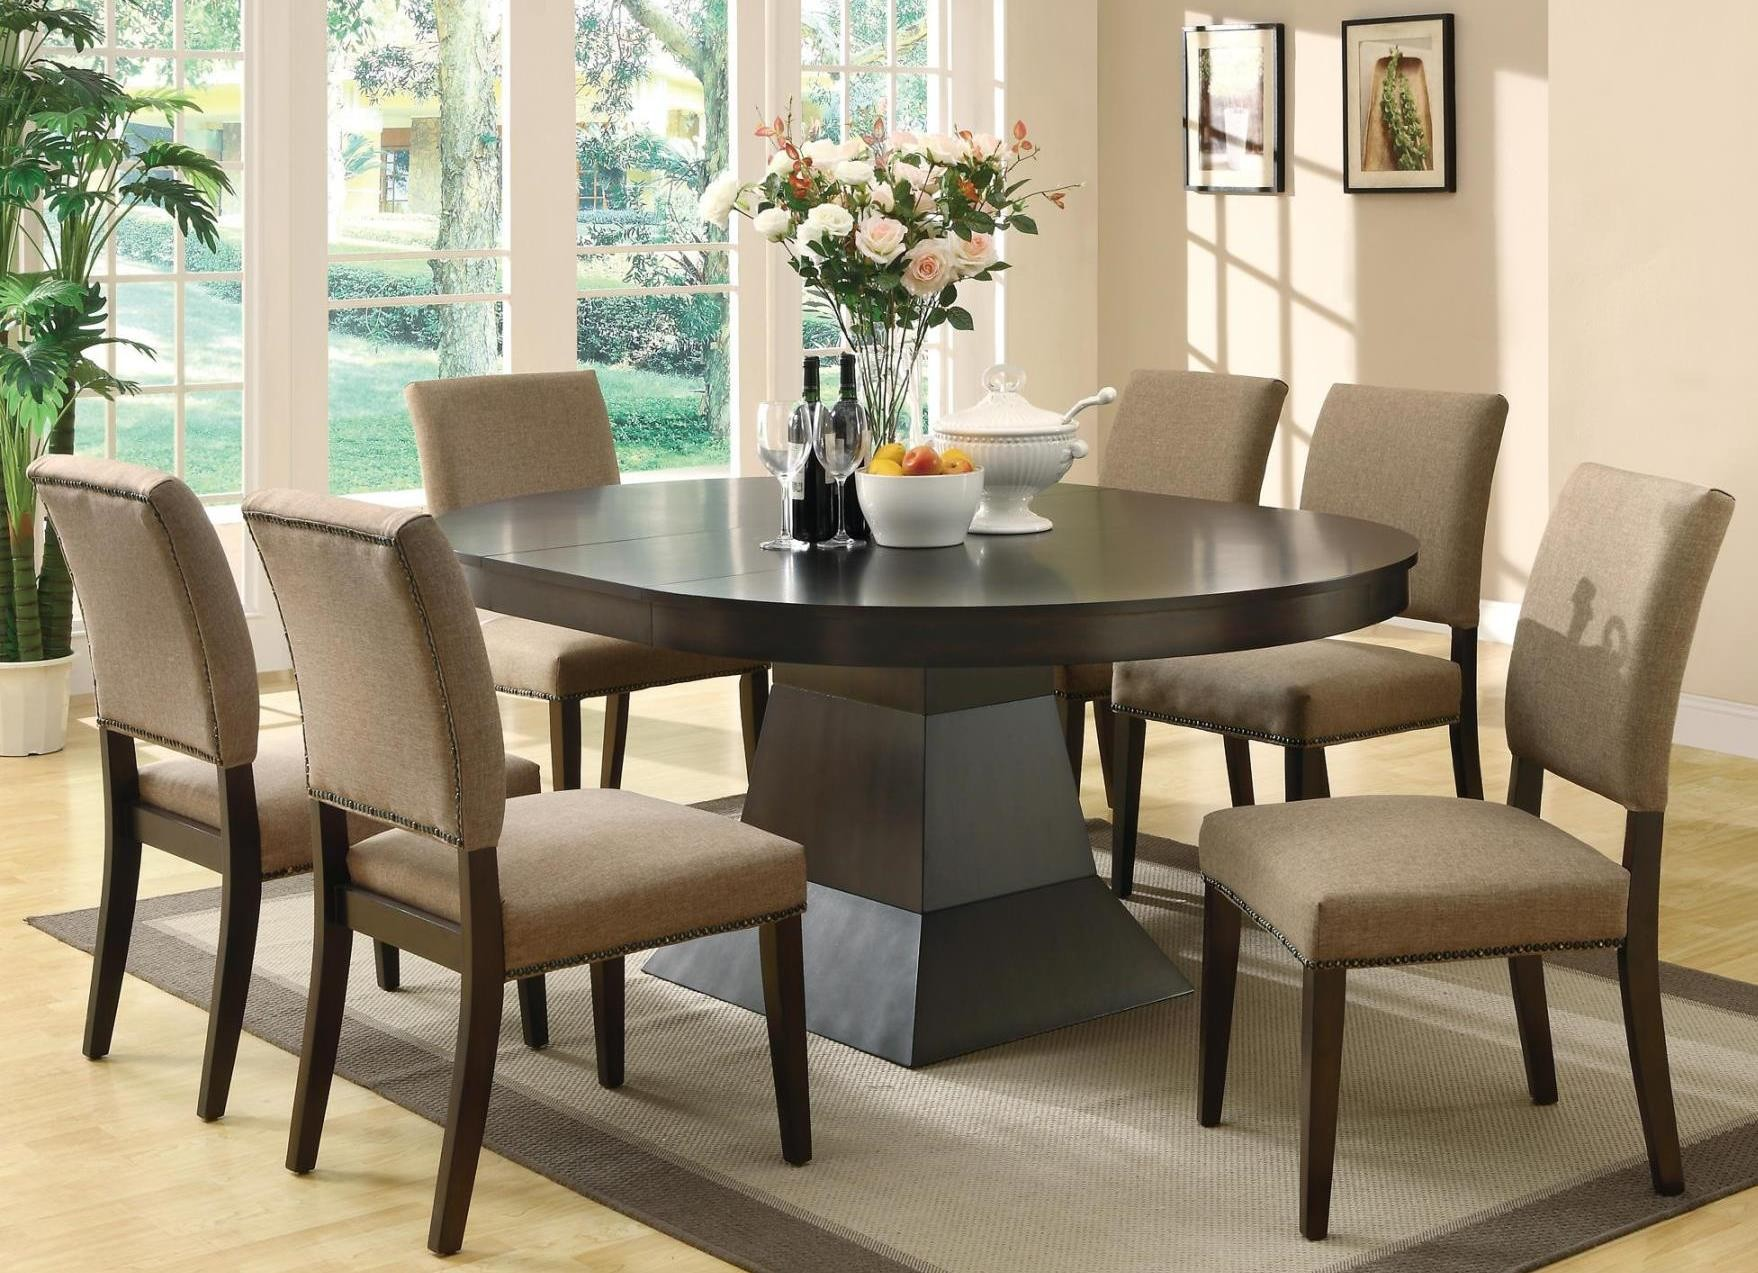 Myrtle Cappuccino Round Extendable Dining Room Set From Coaster 103571 Co